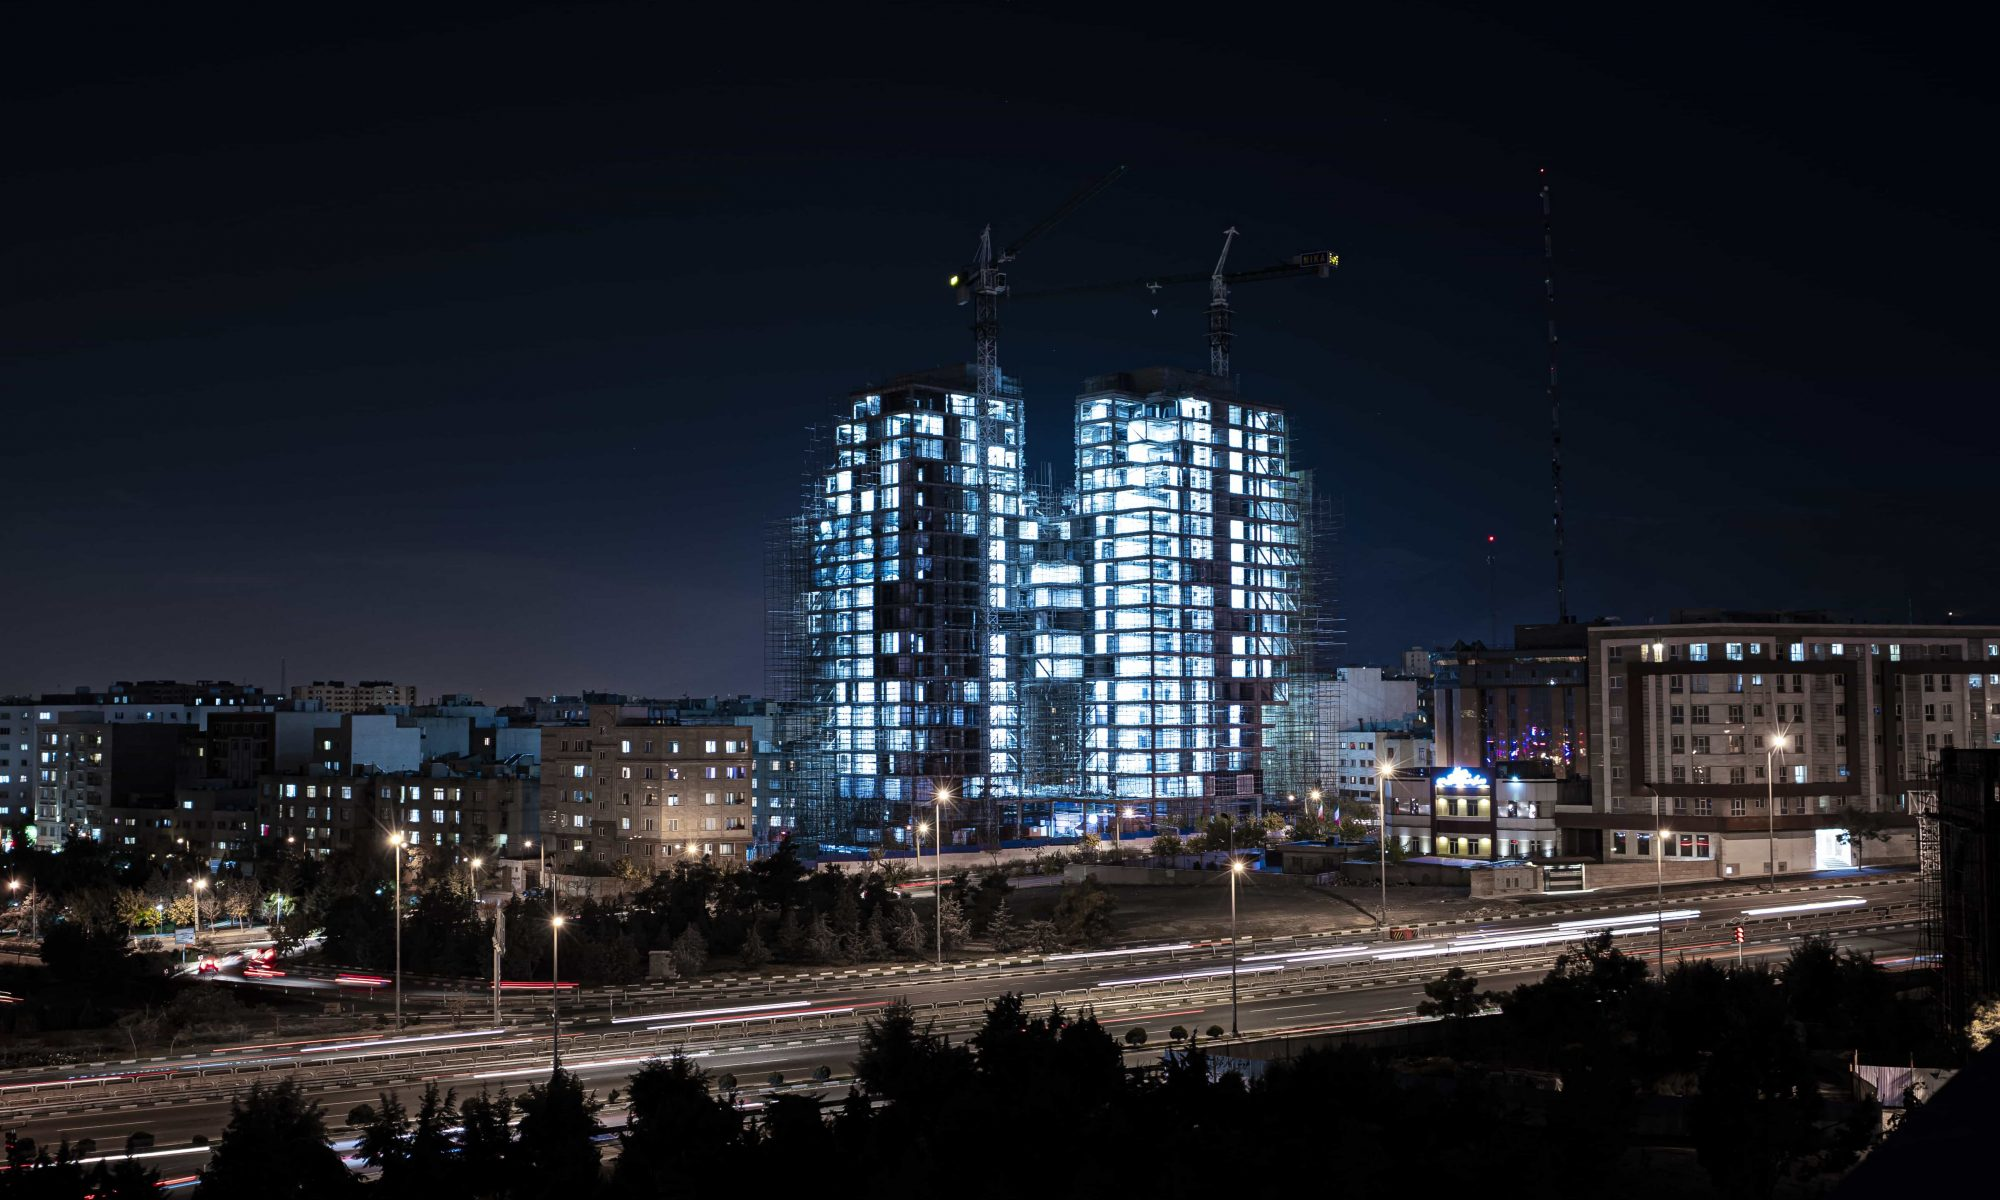 Mika Residential Twin Towers Construction Photo by Parham Raoufi